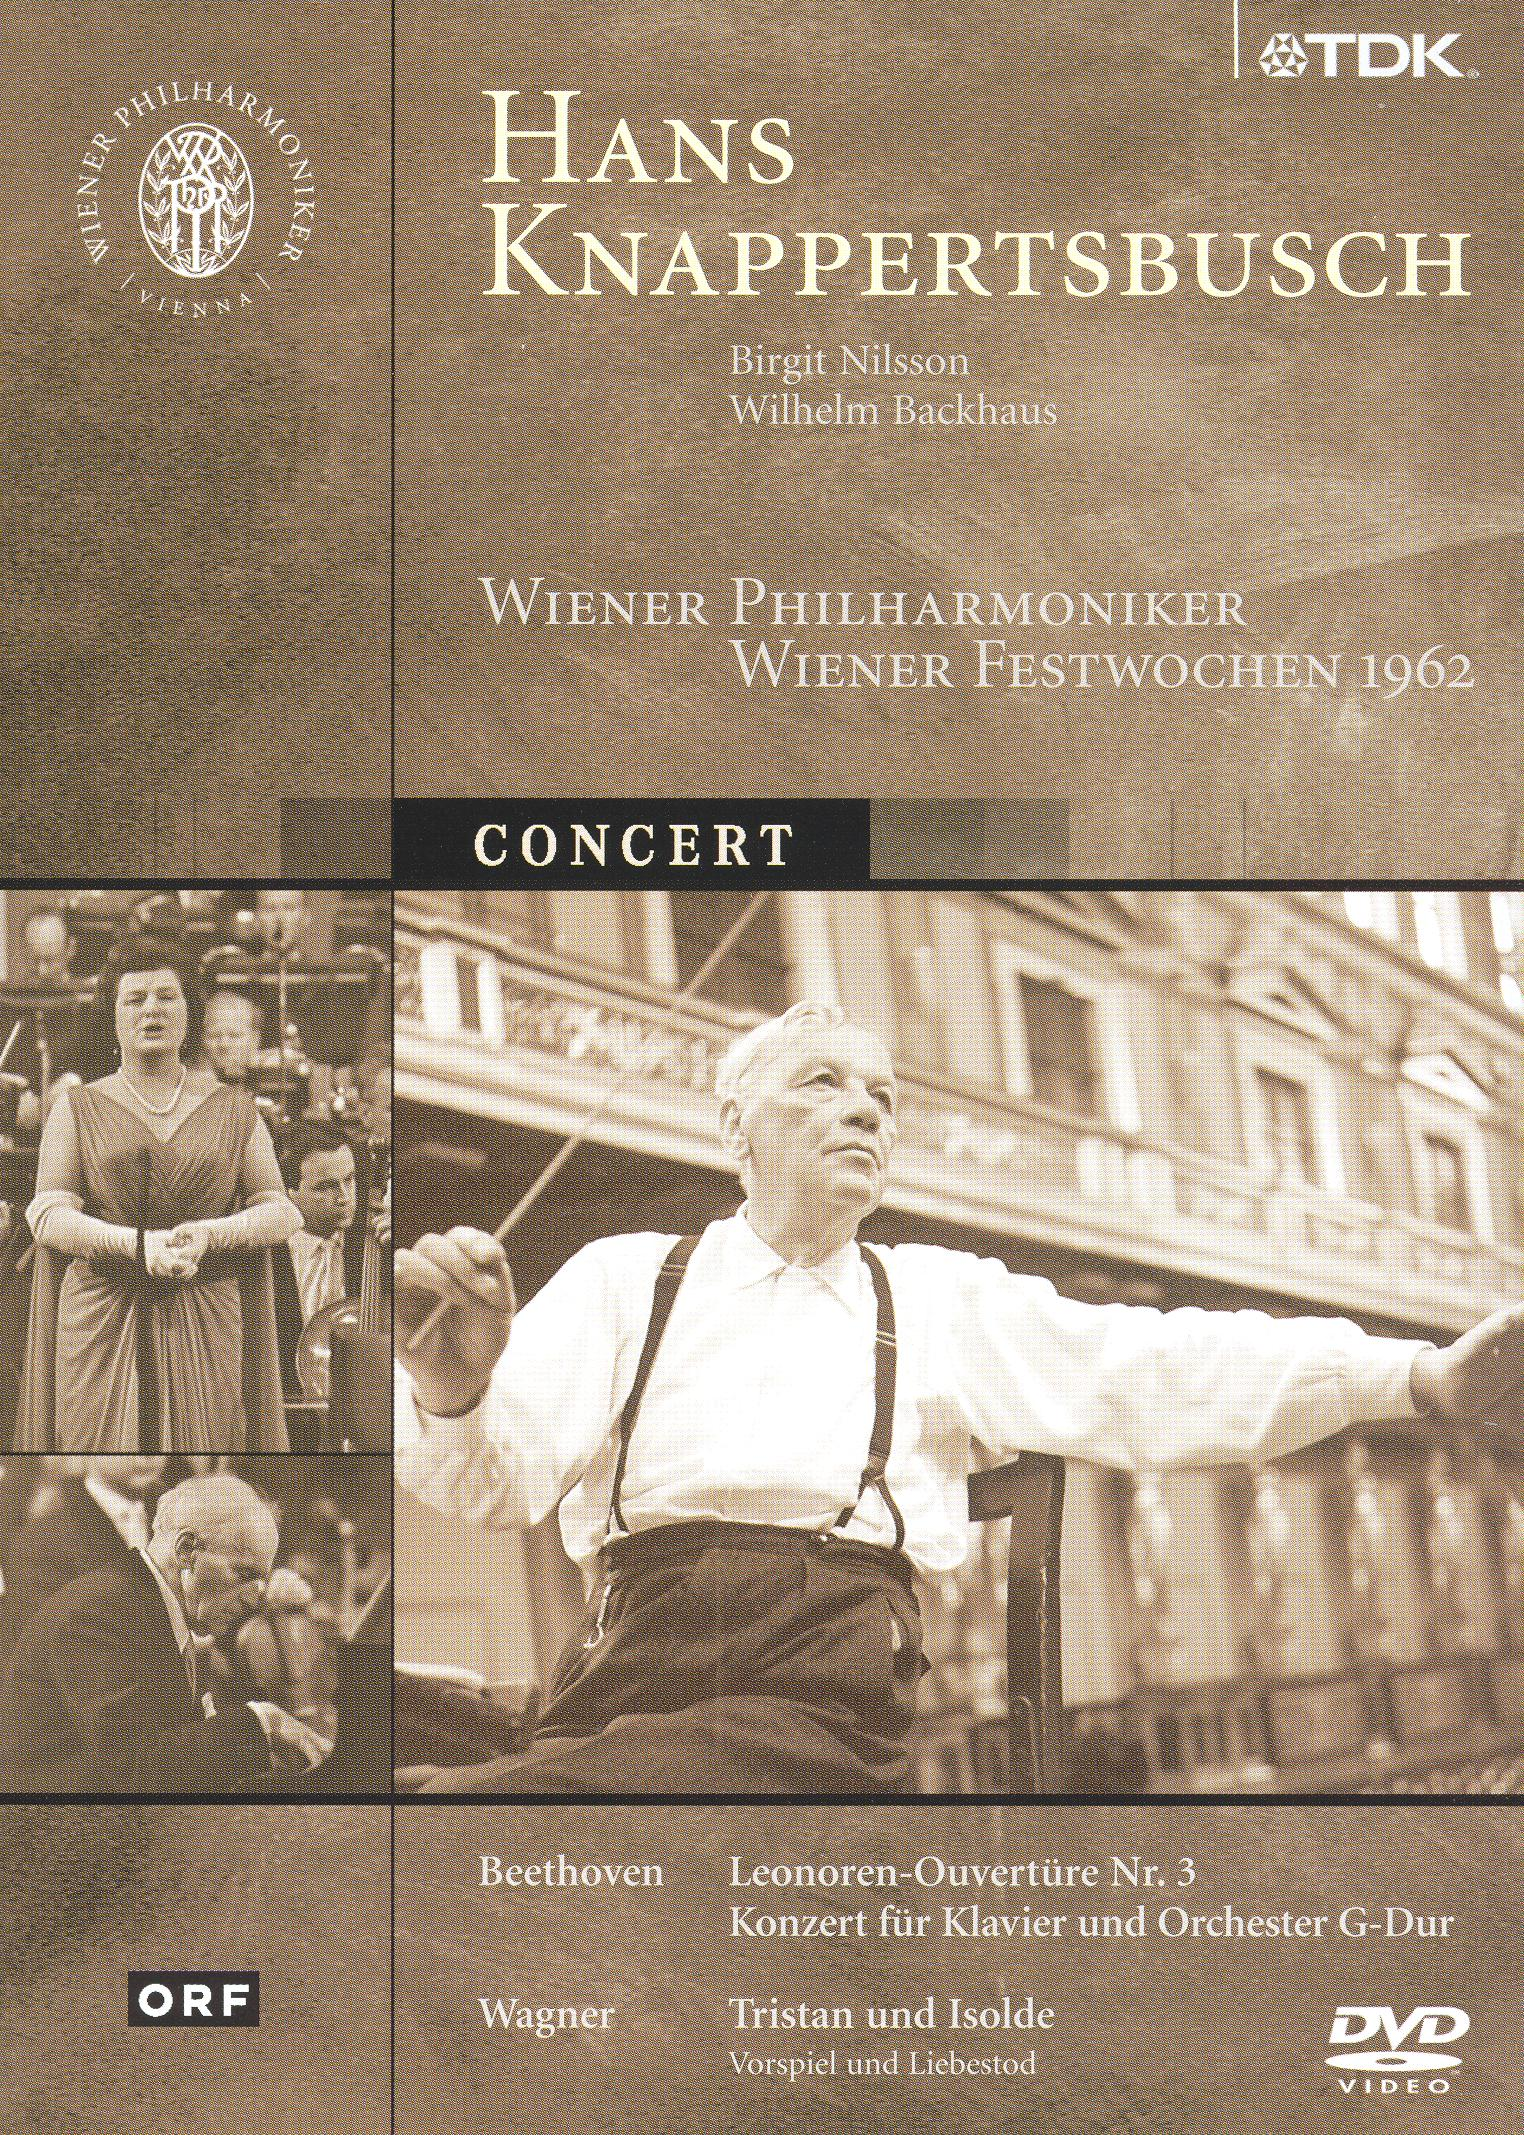 Hans Knappertsbusch & the Wiener Philharmoniker 1962